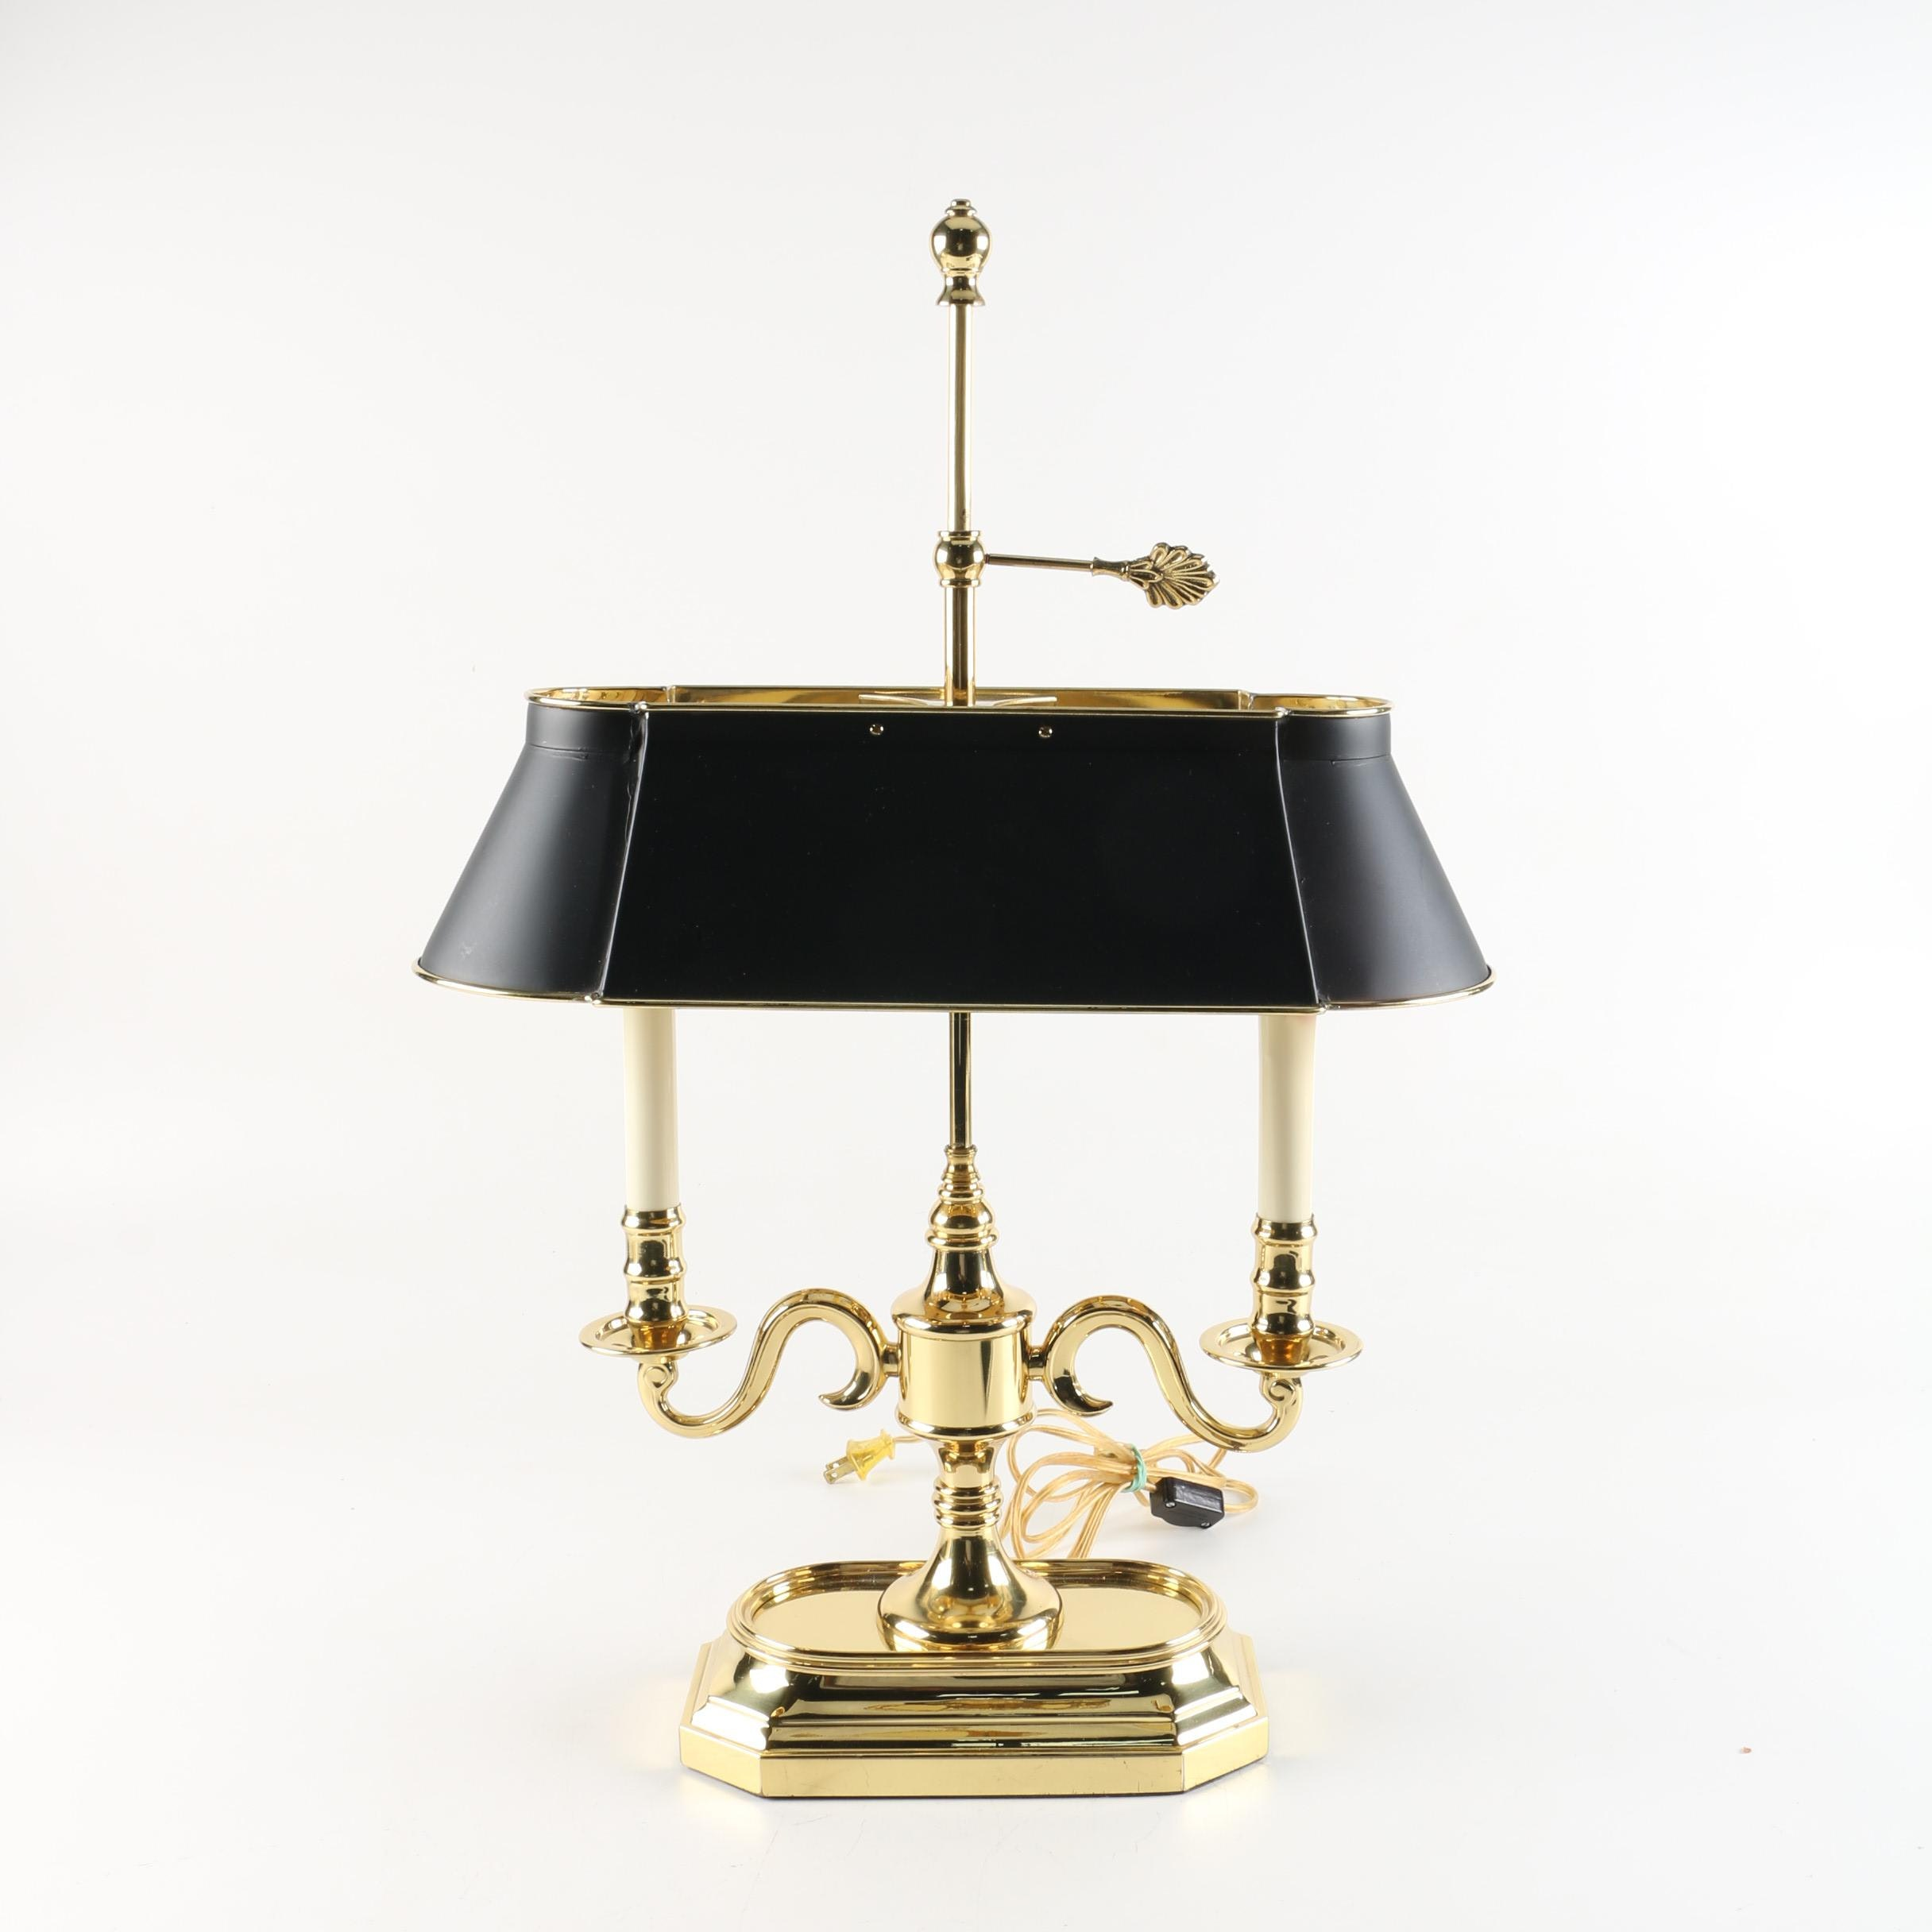 Bouillotte Style Double Light Brass Table Lamp with Metal Shade